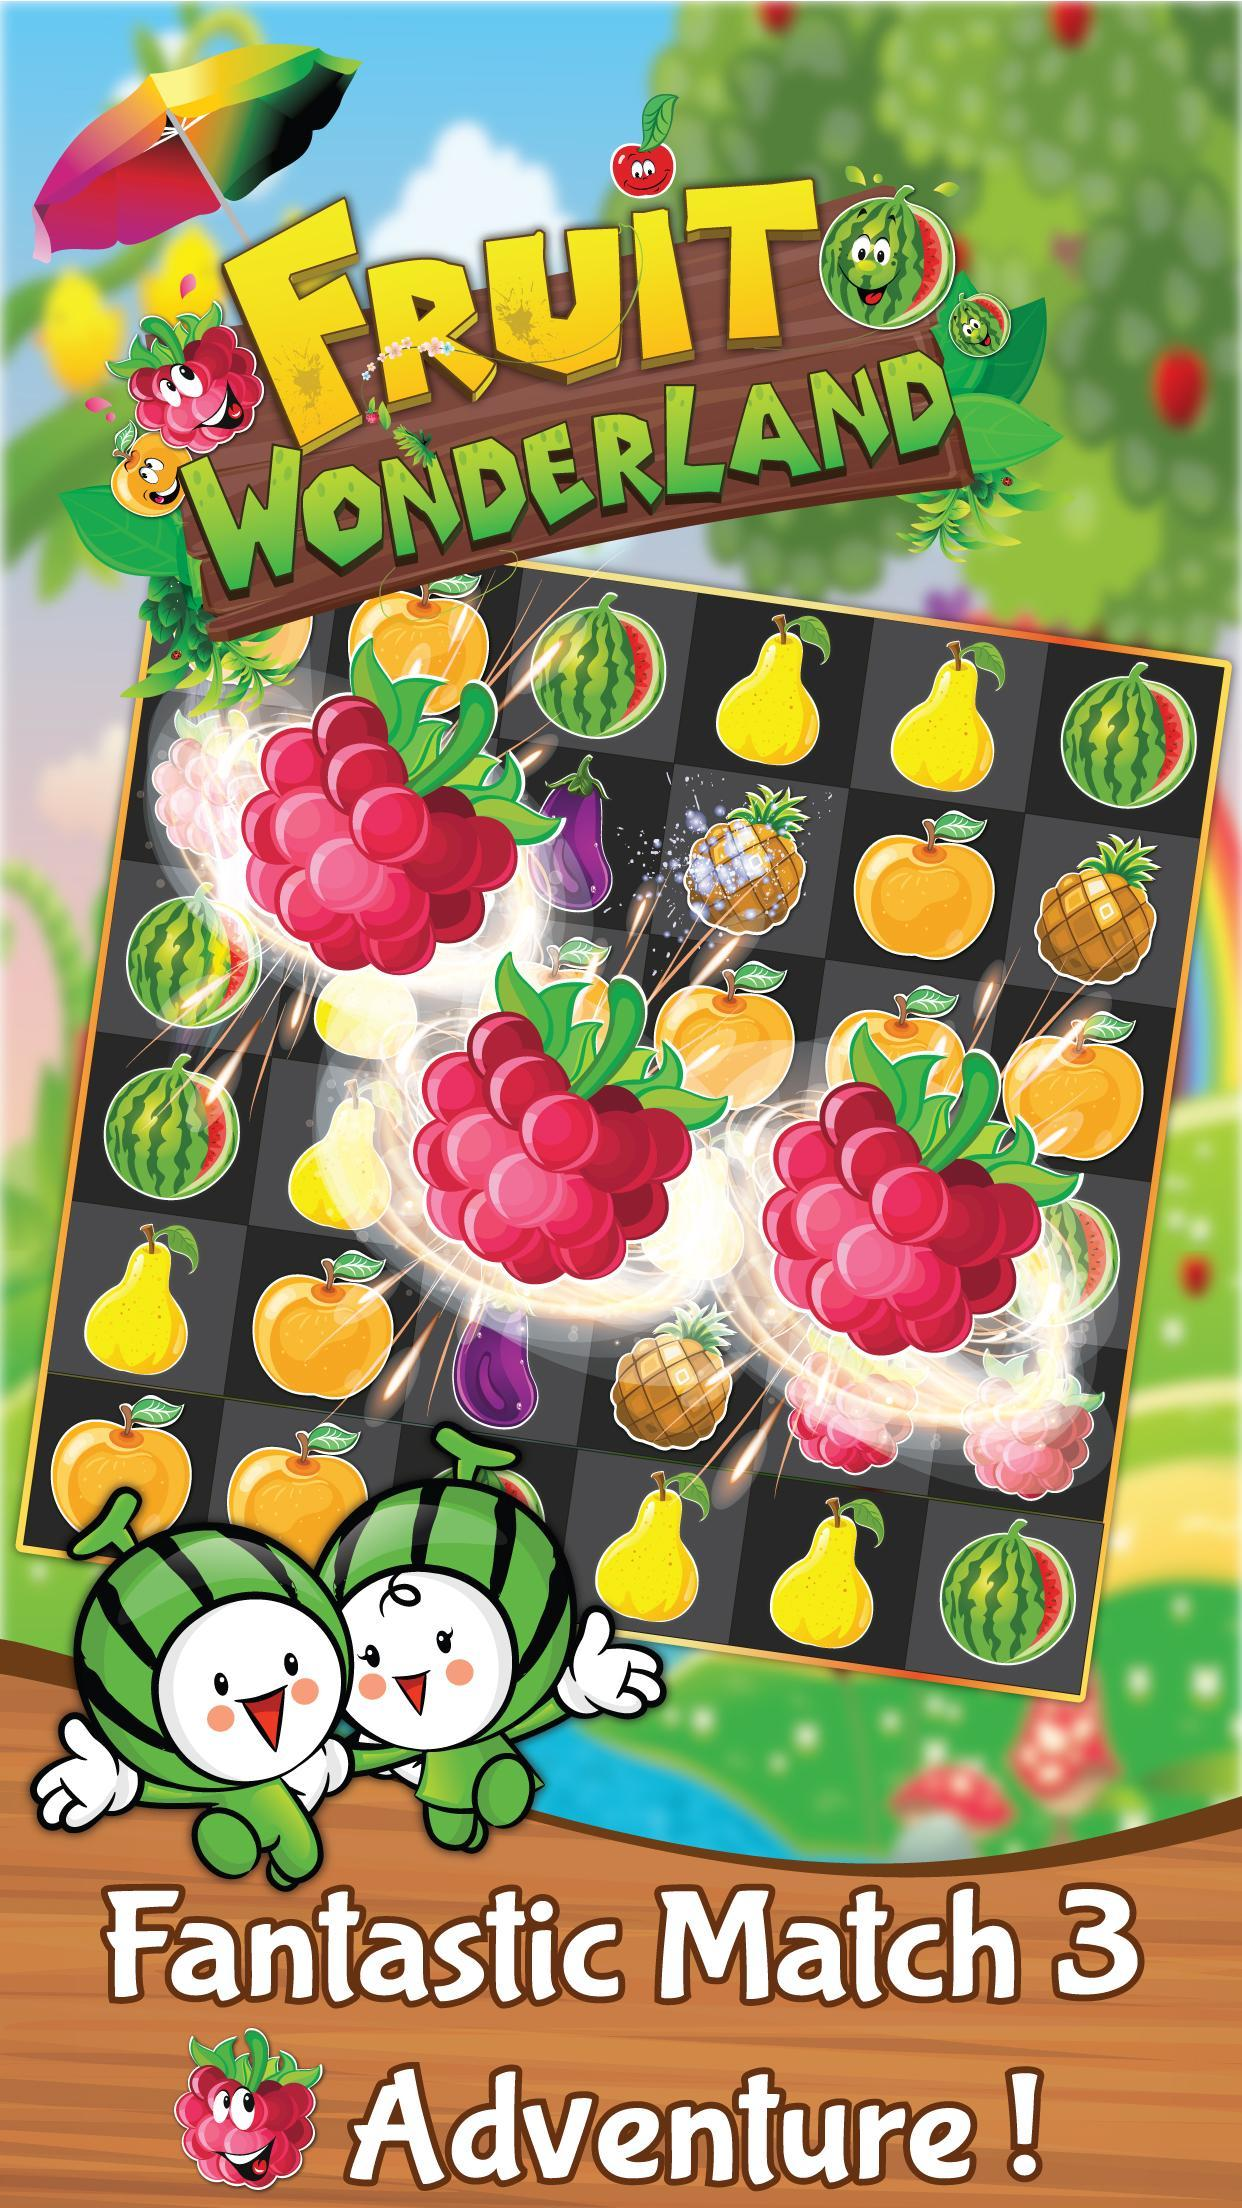 Match 3 Fruit Wonderland Puzzle - Jungle Adventure 1.101 Screenshot 3